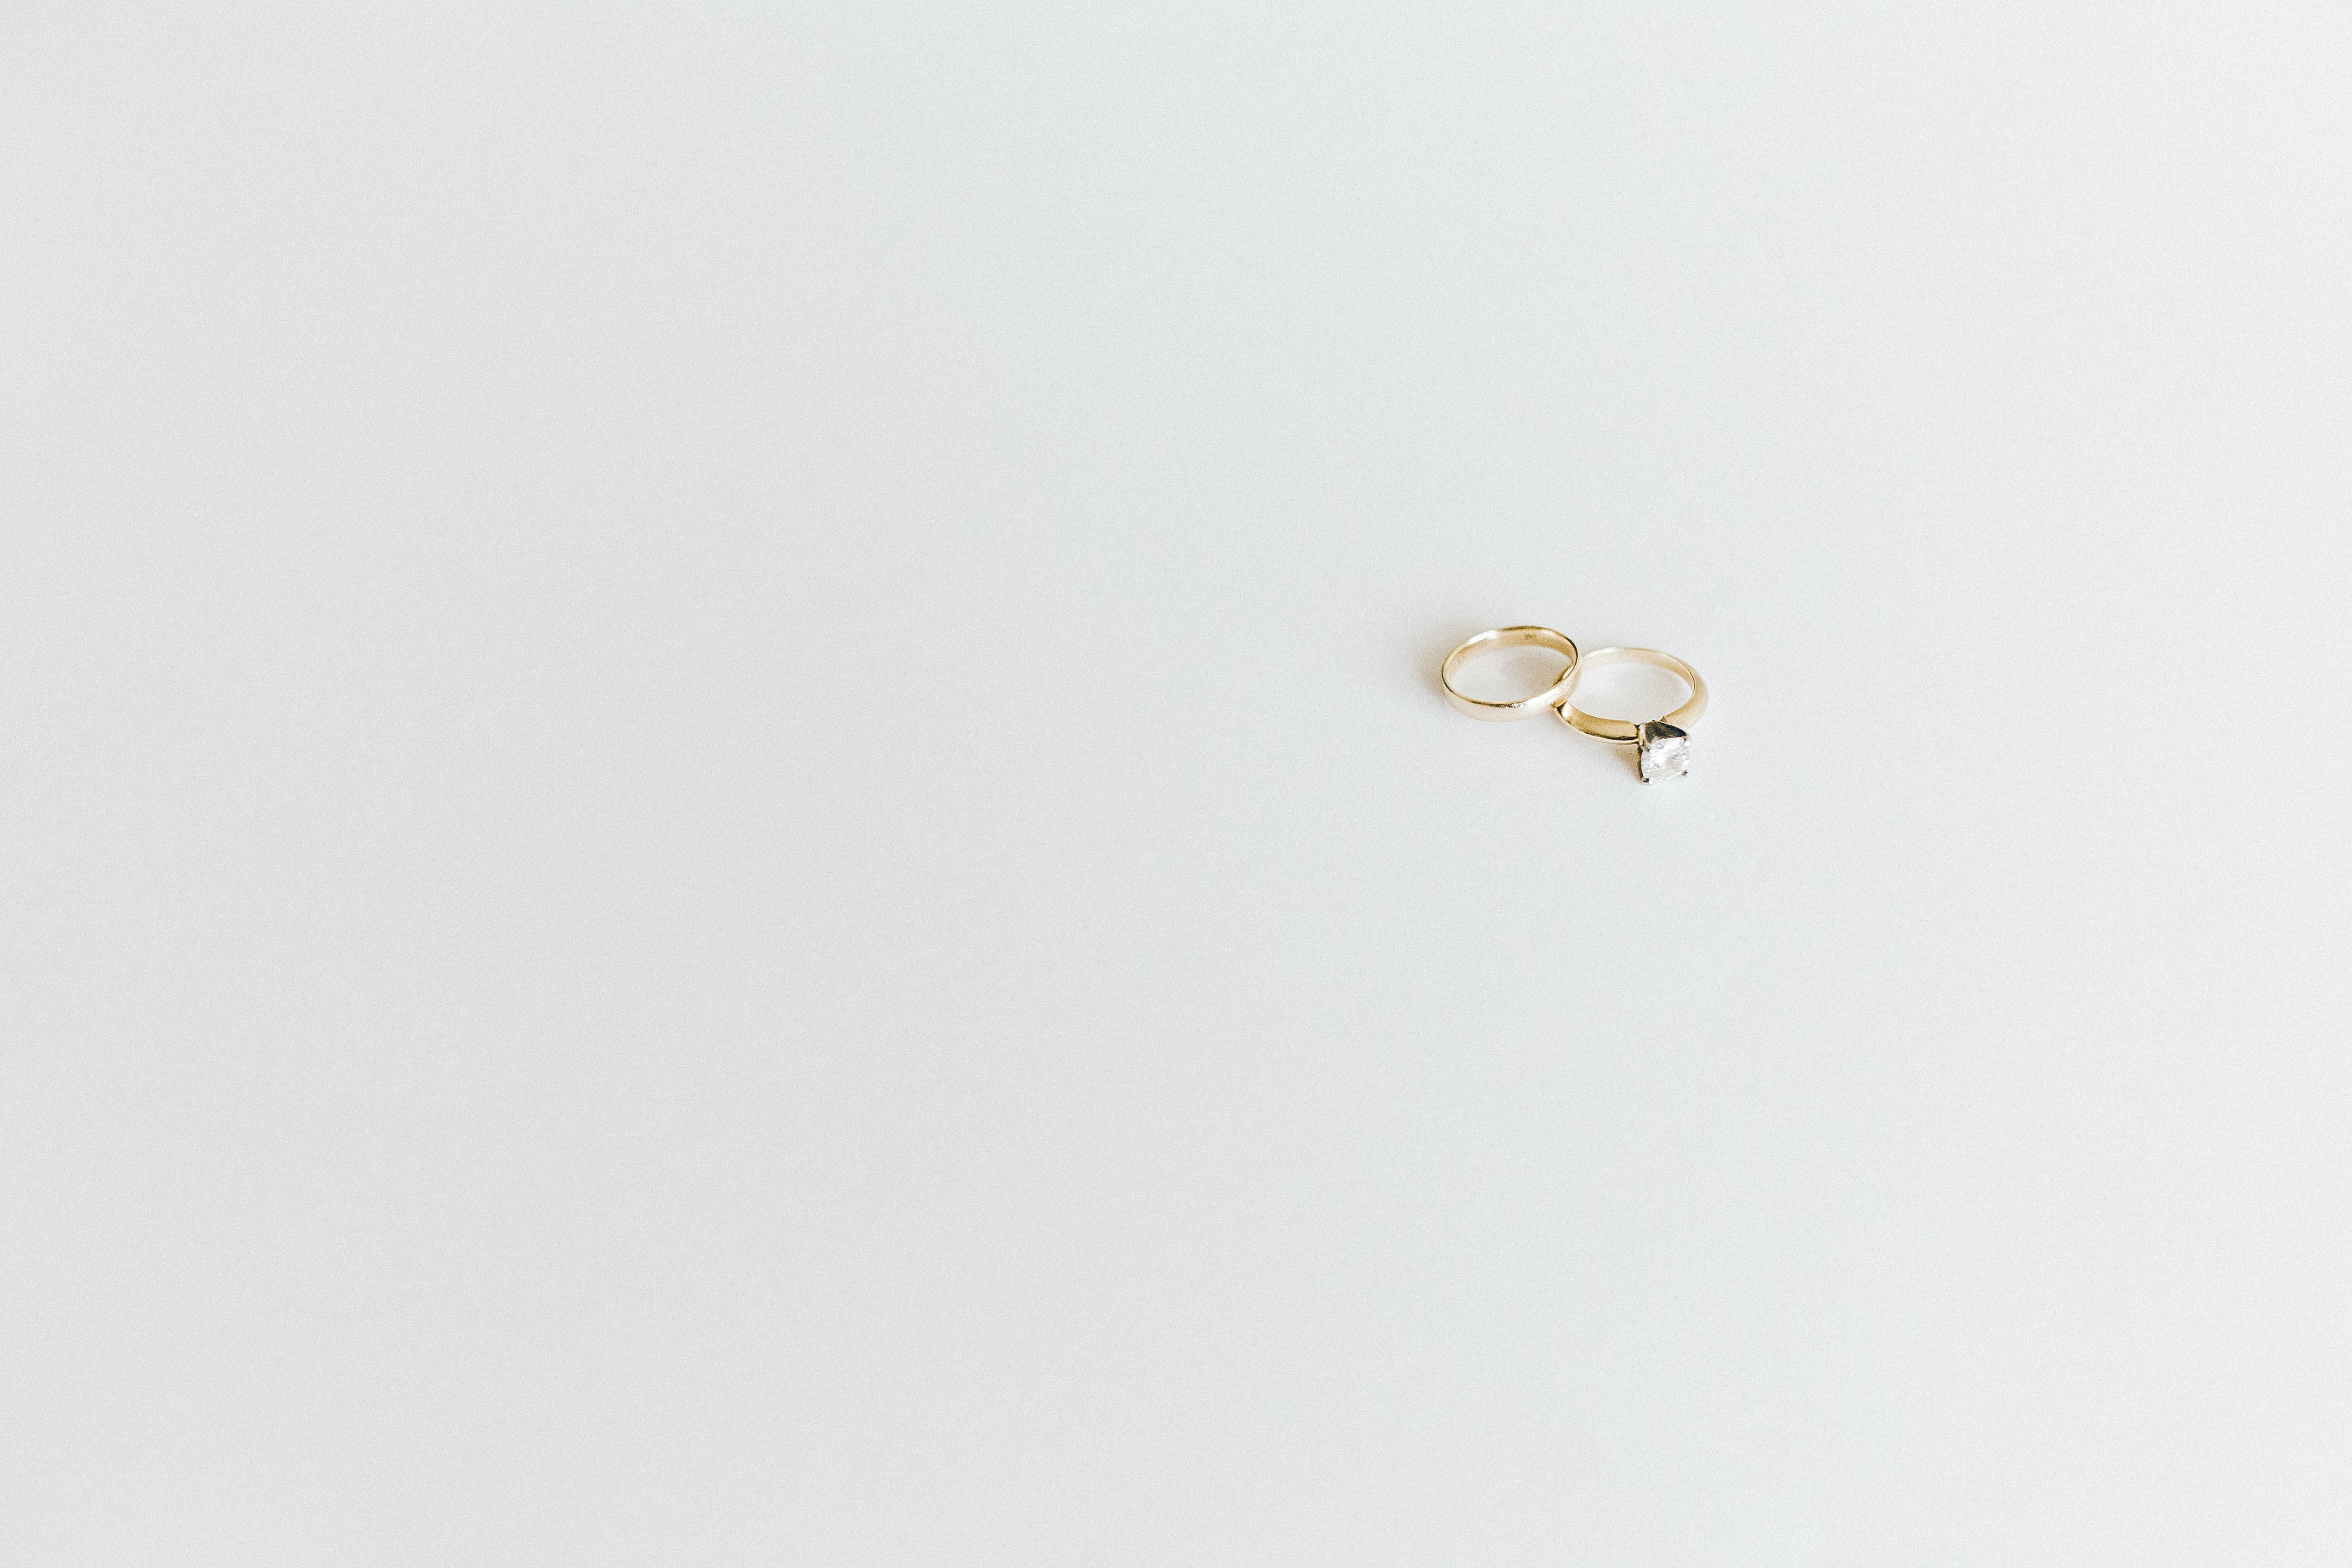 Delicate gold wedding rings sit on a minimalist white surface